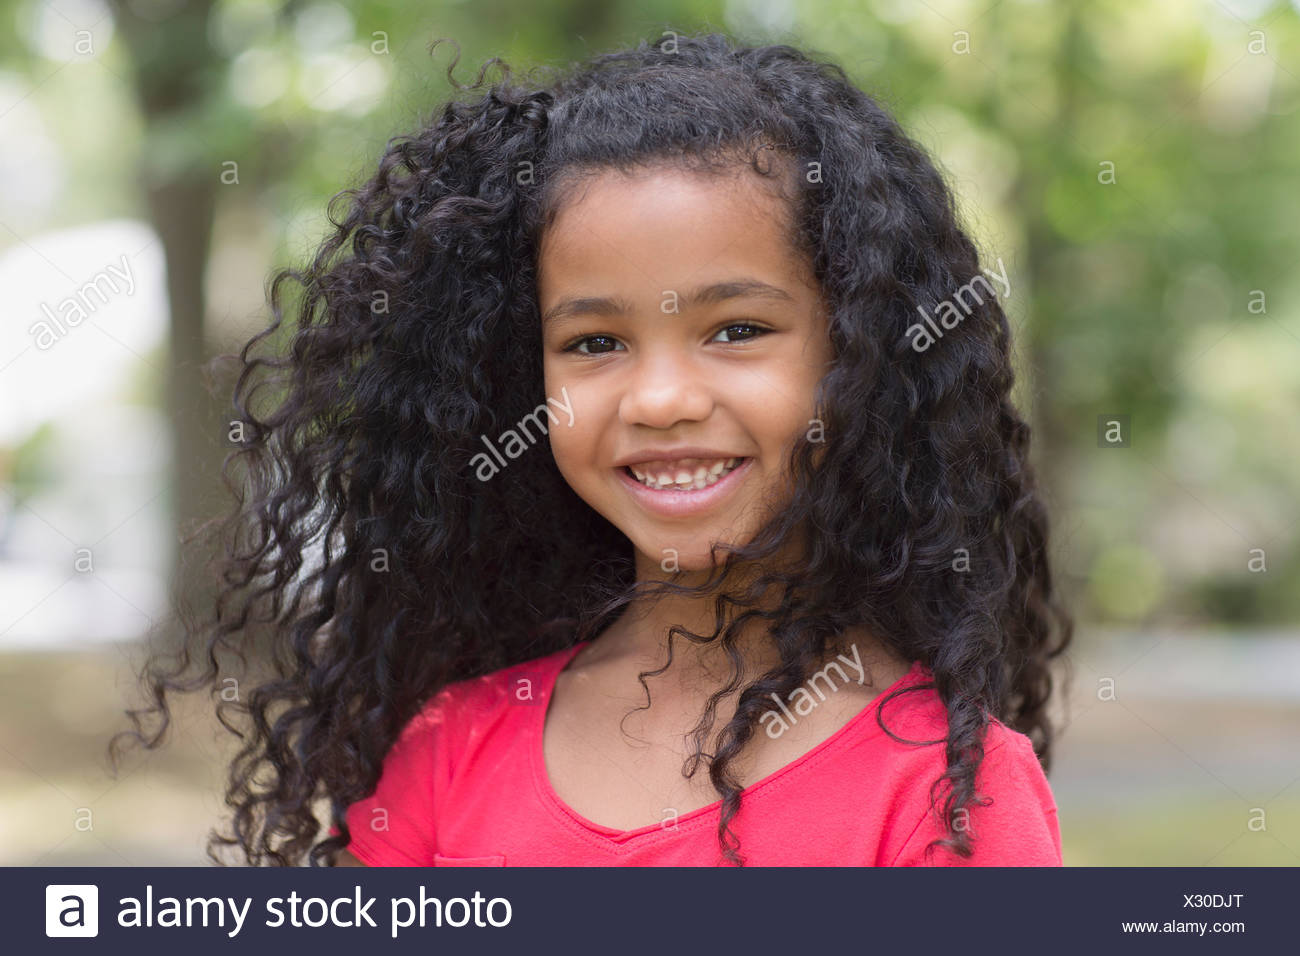 Close up portrait of young girl in park - Stock Image